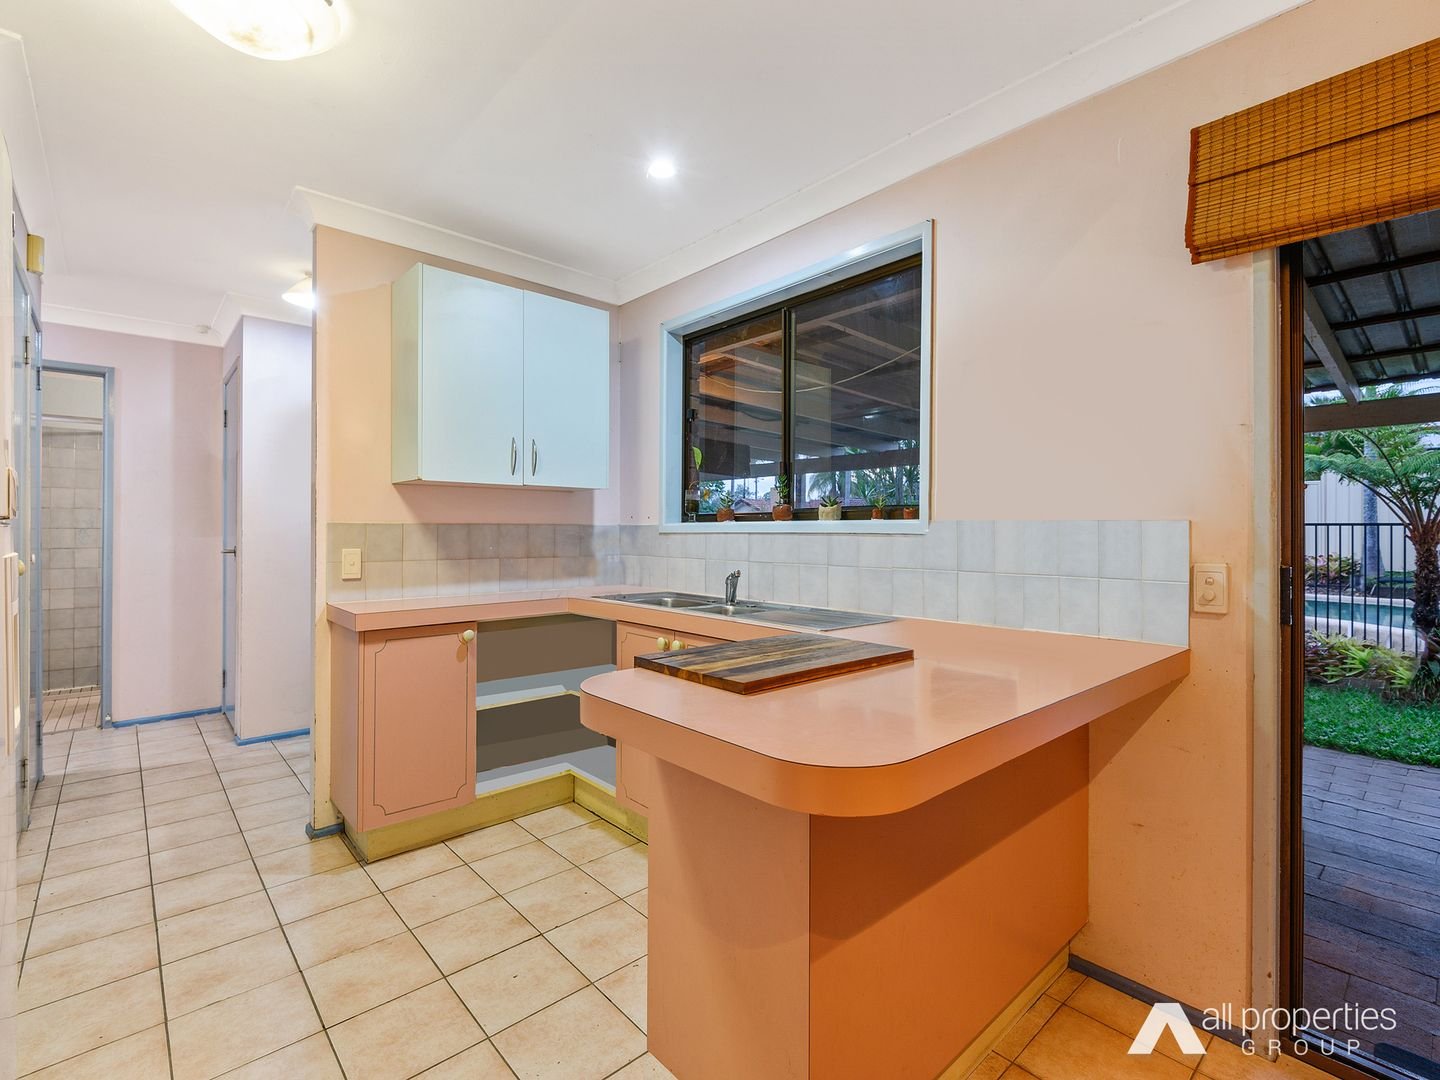 21 Baudin St, Boronia Heights QLD 4124, Image 1